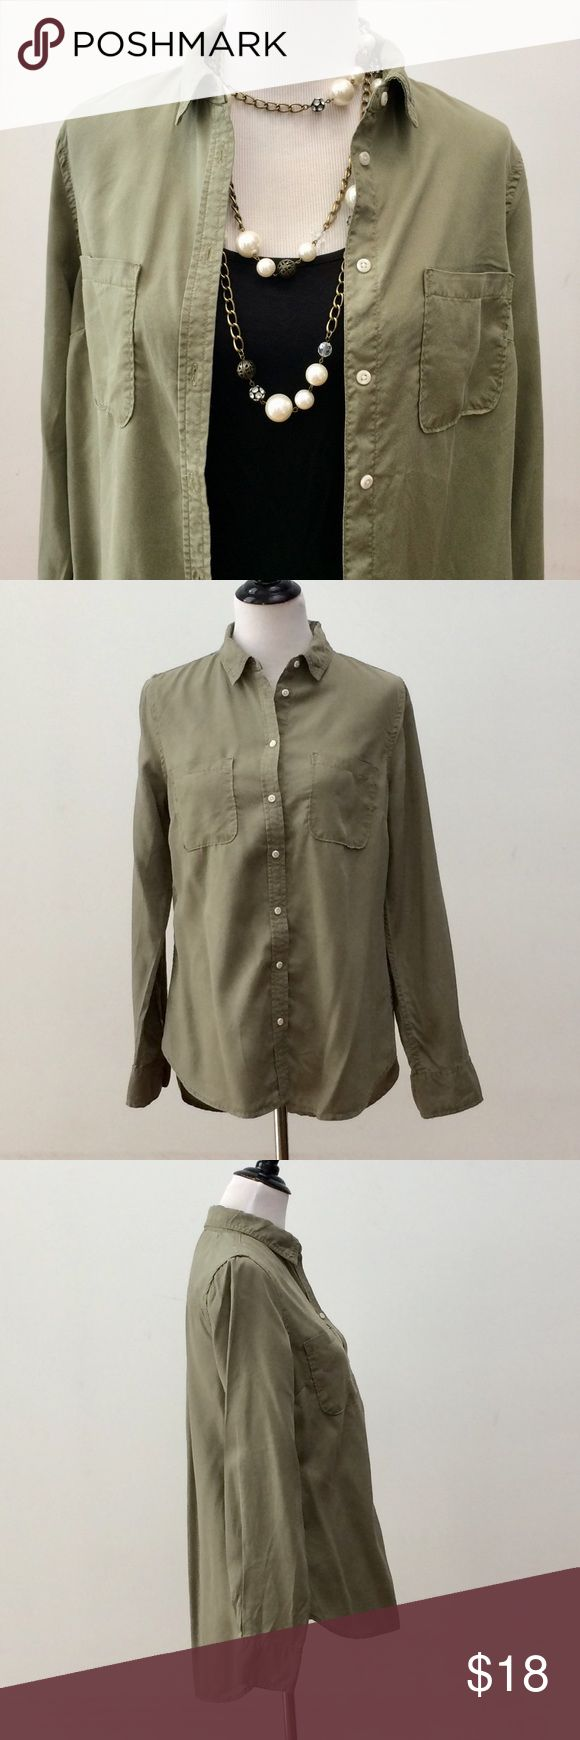 """Merona Button Down Shirt Size M Merona brand button down shirt size medium. Army green color. High collar option. 2 front pockets. 8 buttons. 3 button closure on sleeves.   100% Lyocell.   Approximate measurements:   Bust = 40""""  Sleeves = 25""""  Length = 28"""" (front & about 2"""" longer on back)  Very good condition w/minor markings (see photos w/pink pen).   Open to offers.   Thanks! Merona Tops Button Down Shirts"""